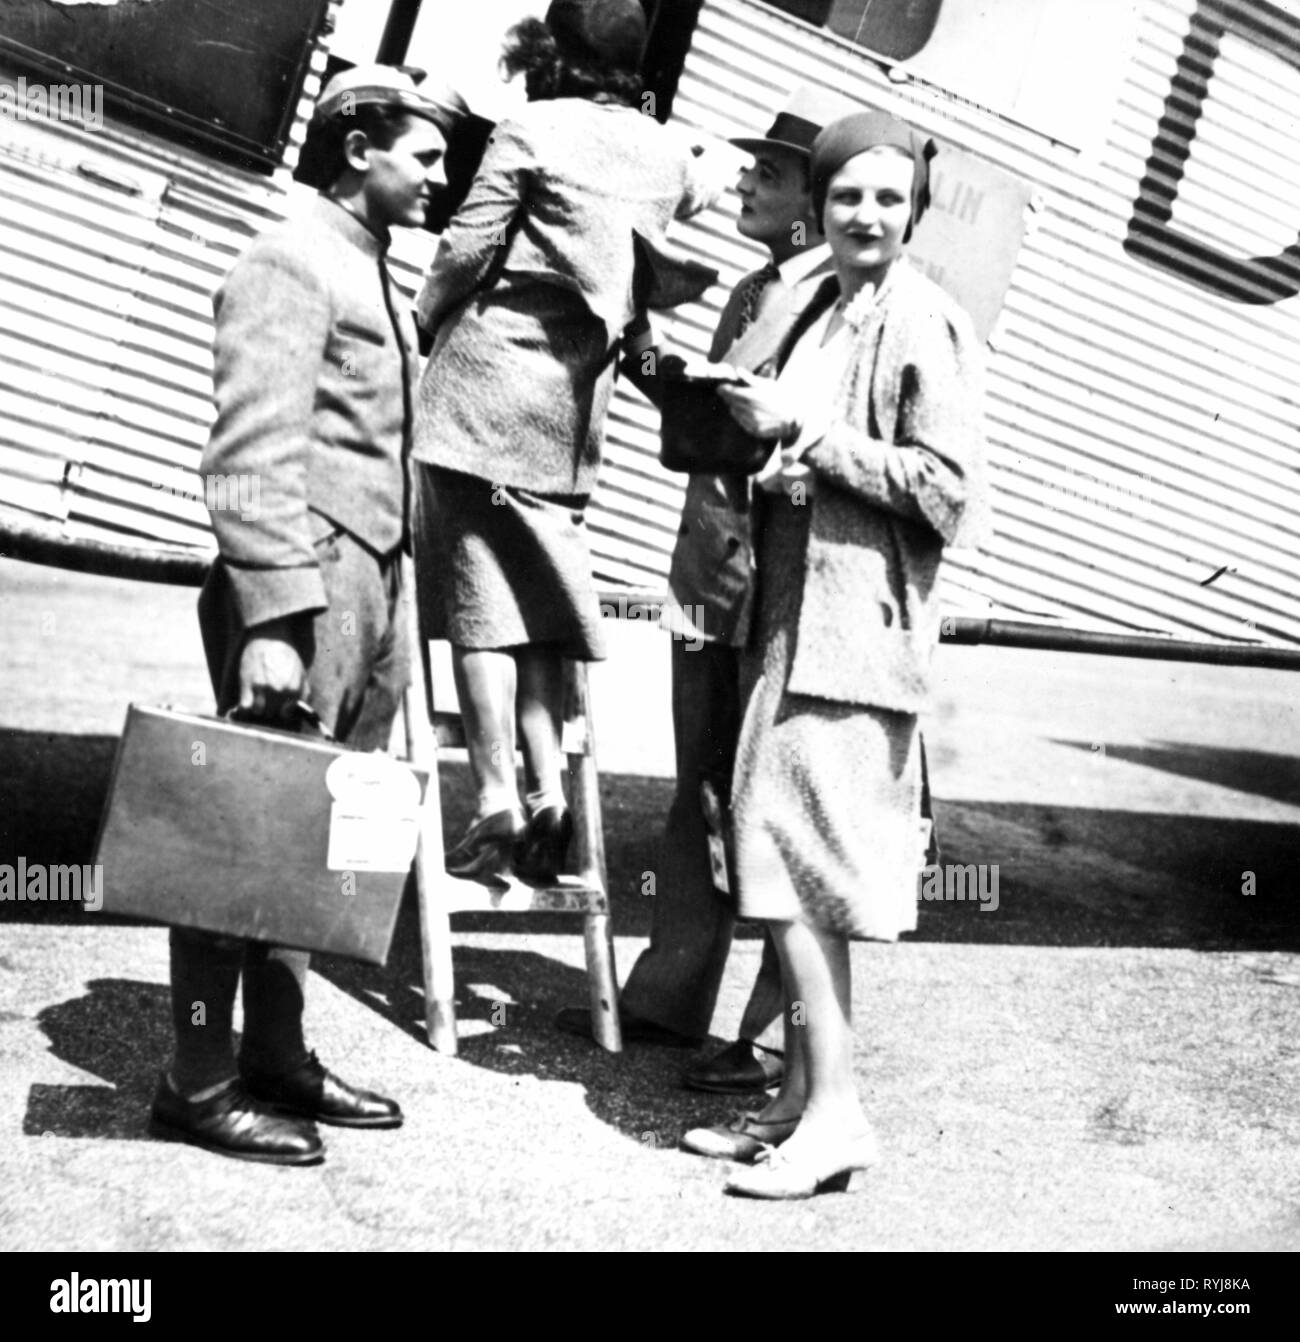 transport / transportation, aviation, airlines, Deutsche Luft Hansa, passengers boarding a Junkers G 31, Germany, later 1920s, Additional-Rights-Clearance-Info-Not-Available - Stock Image